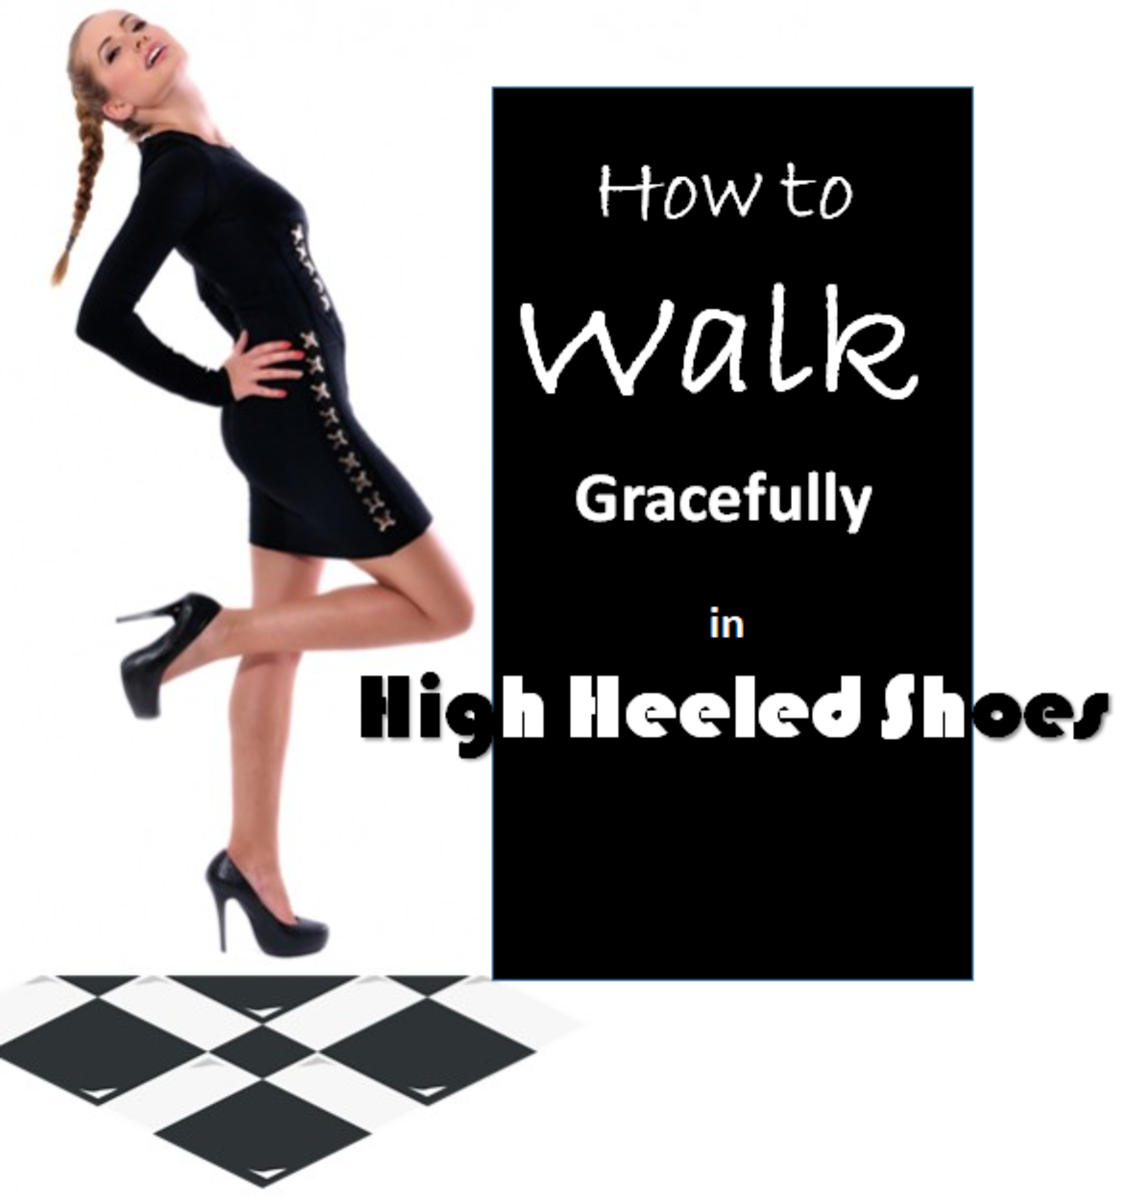 How to Walk Gracefully in High Heeled Shoes